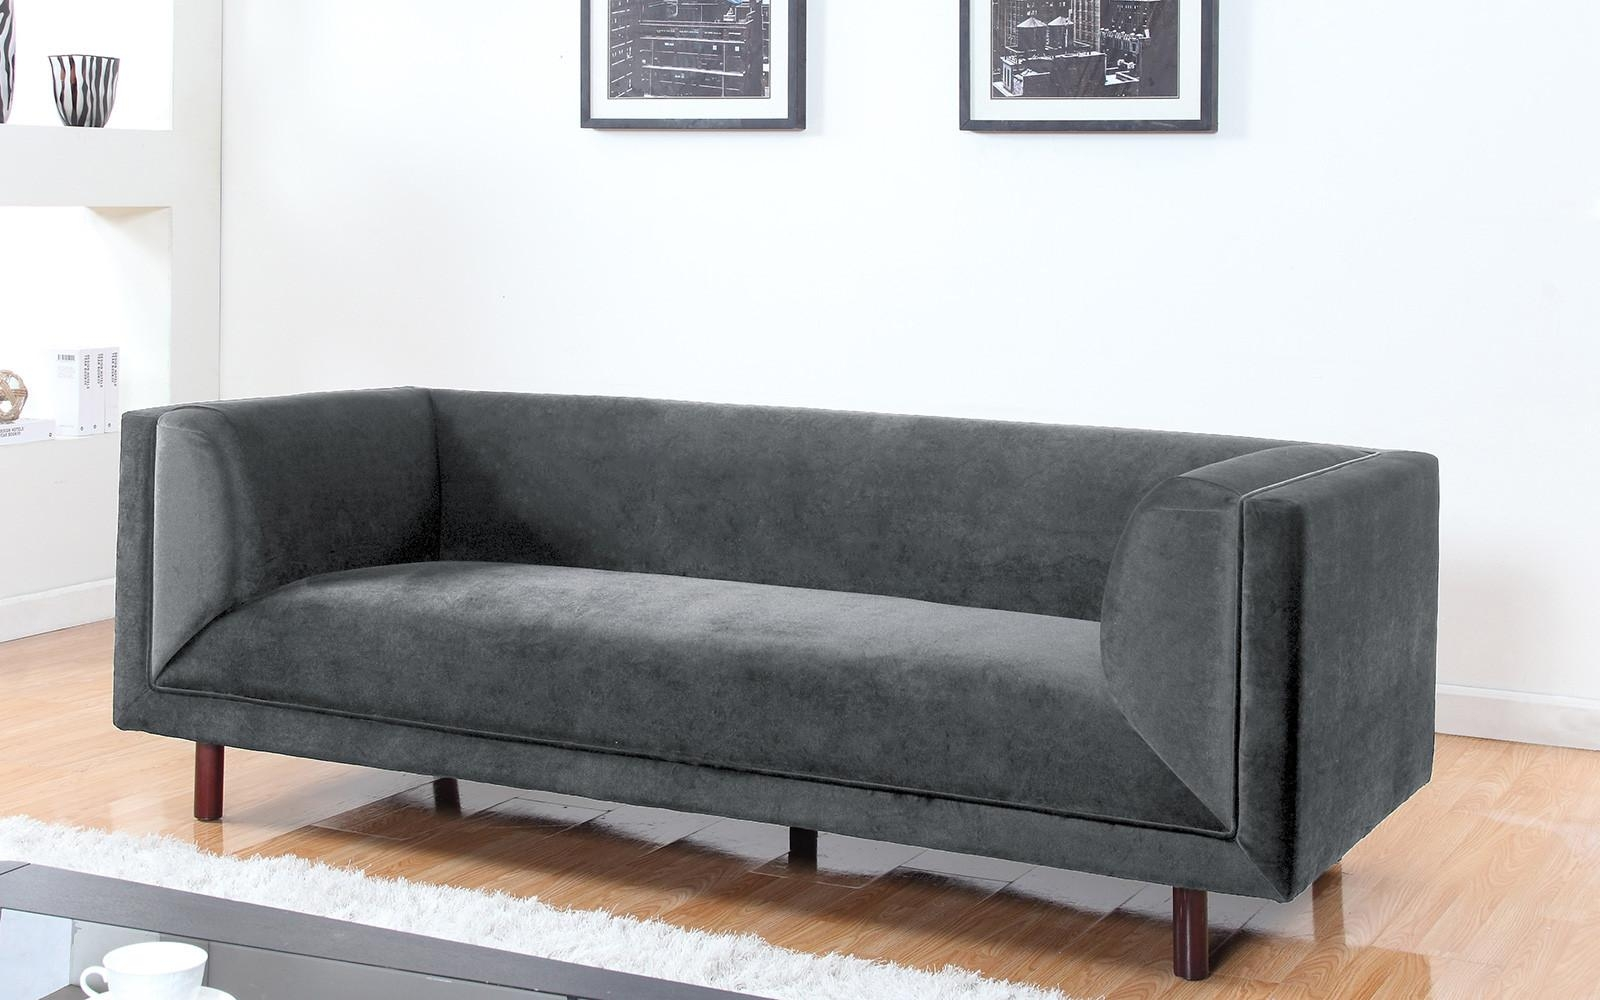 Modern Contemporary Large 3 Seater Velvet Sofa – Walmart Throughout Modern 3 Seater Sofas (View 7 of 20)